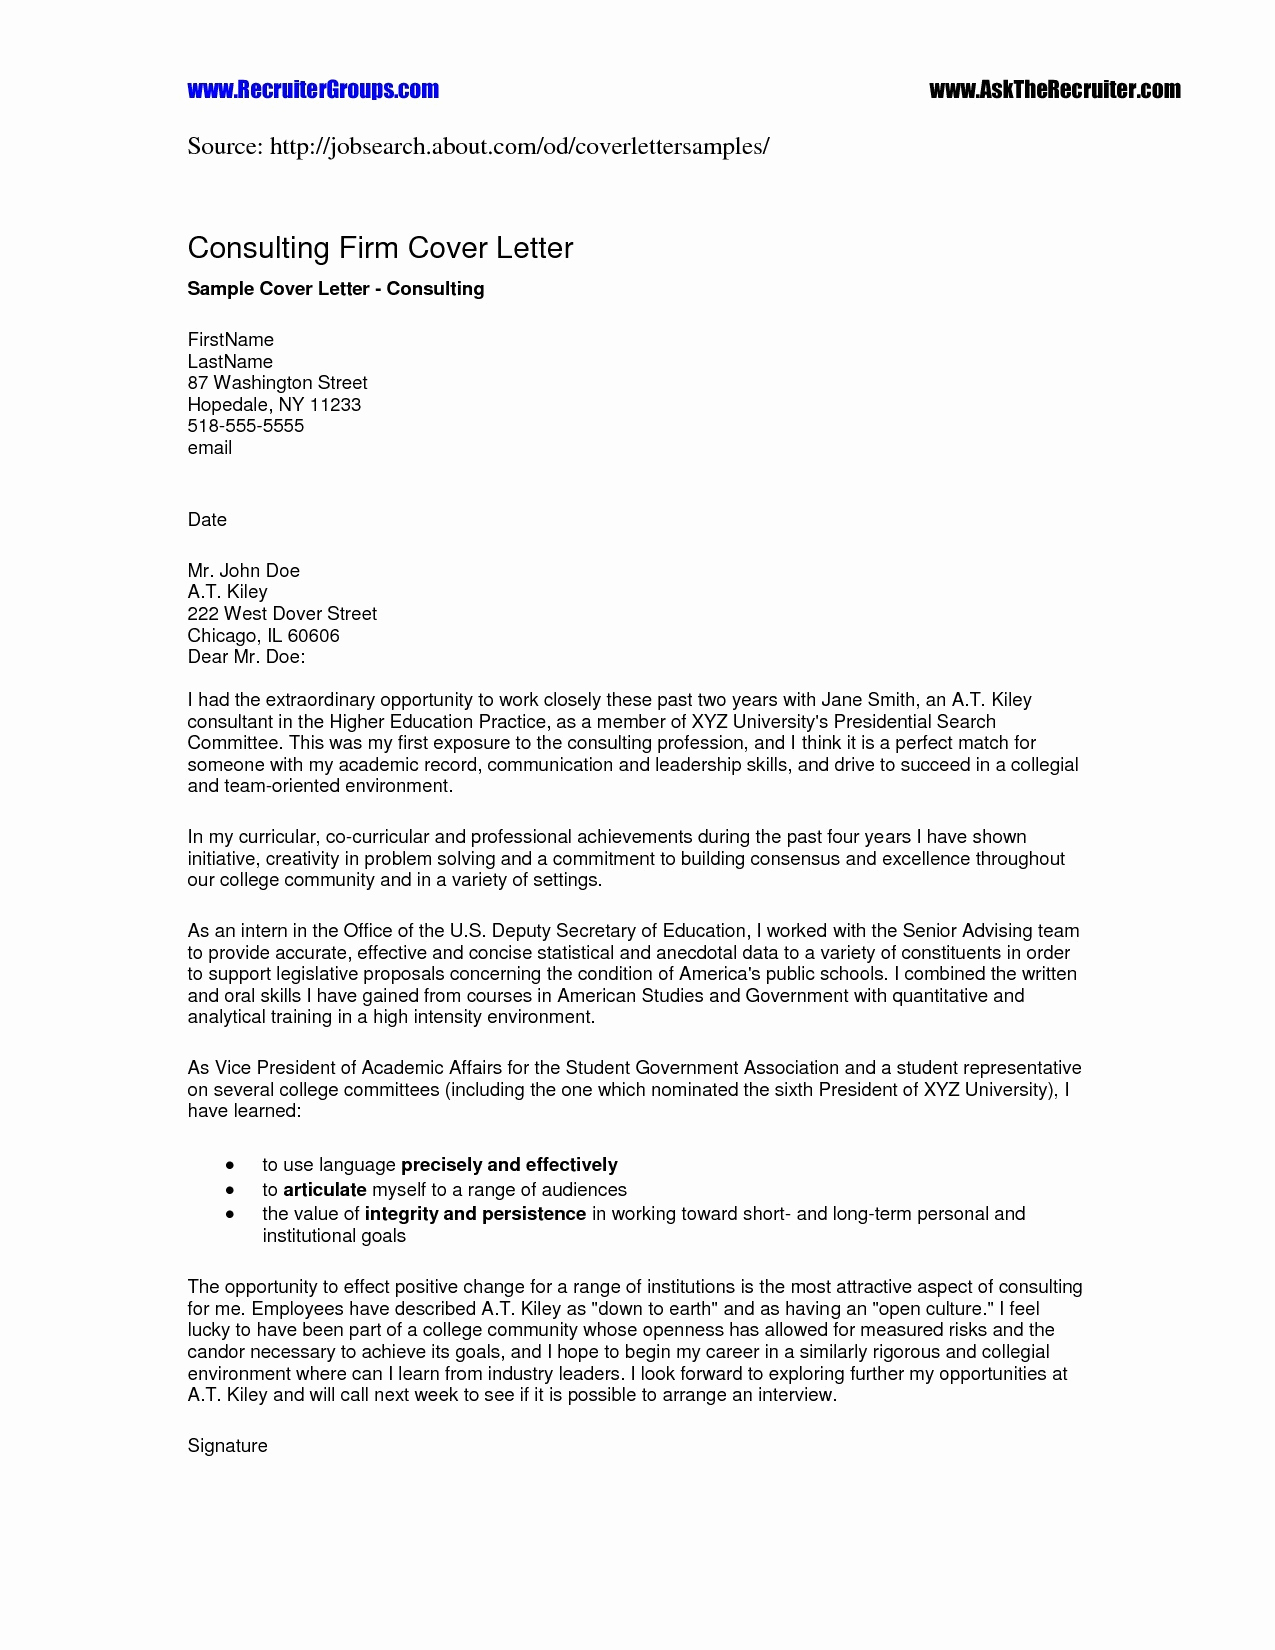 Letter to Congressman Template - 20 Health Care Cover Letter Sample